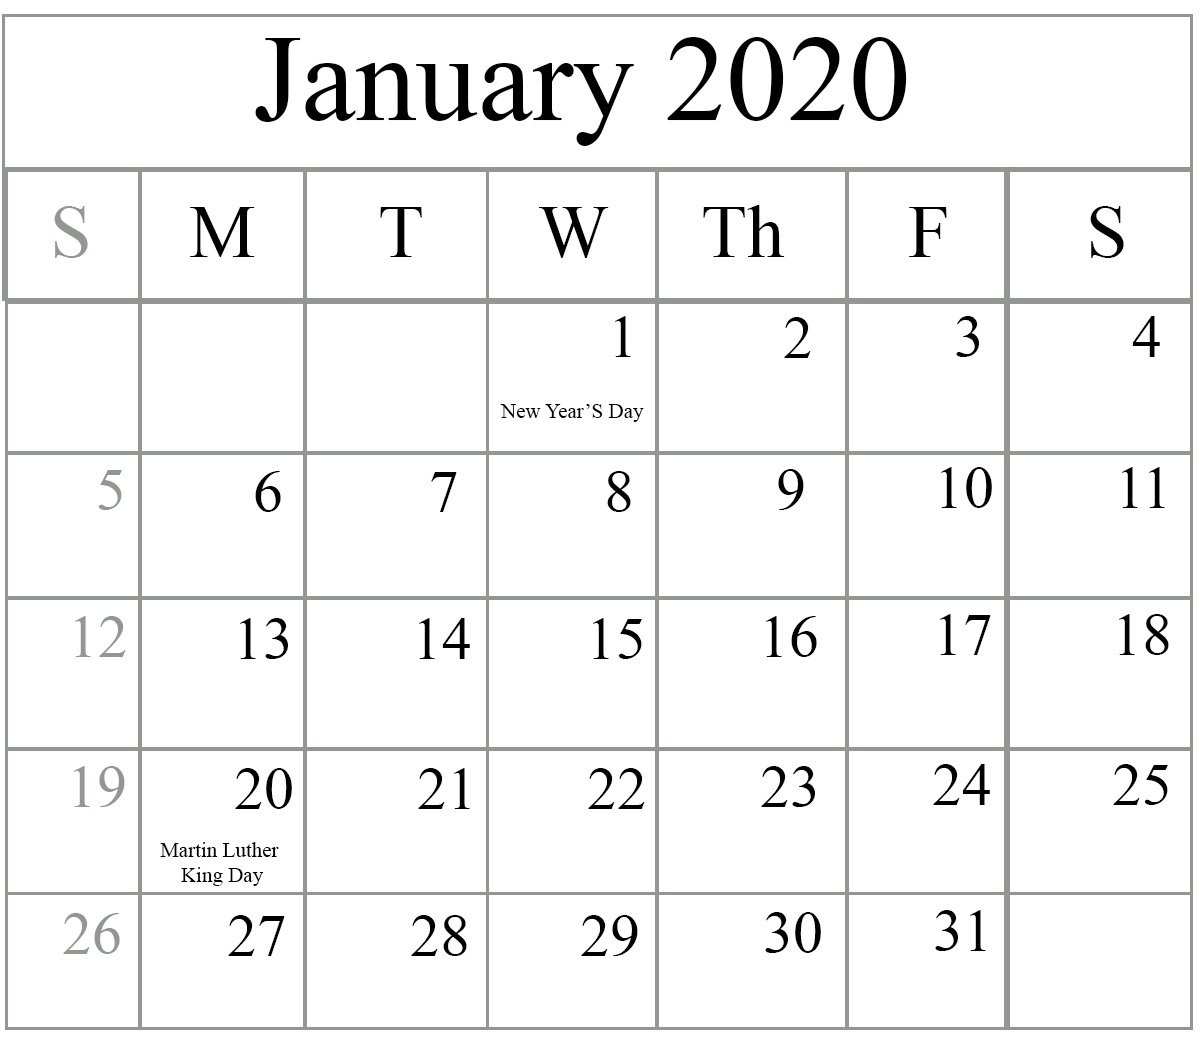 Free January 2020 Printable Calendar In Pdf, Excel & Word-January 2020 Printable Calendar With Holidays